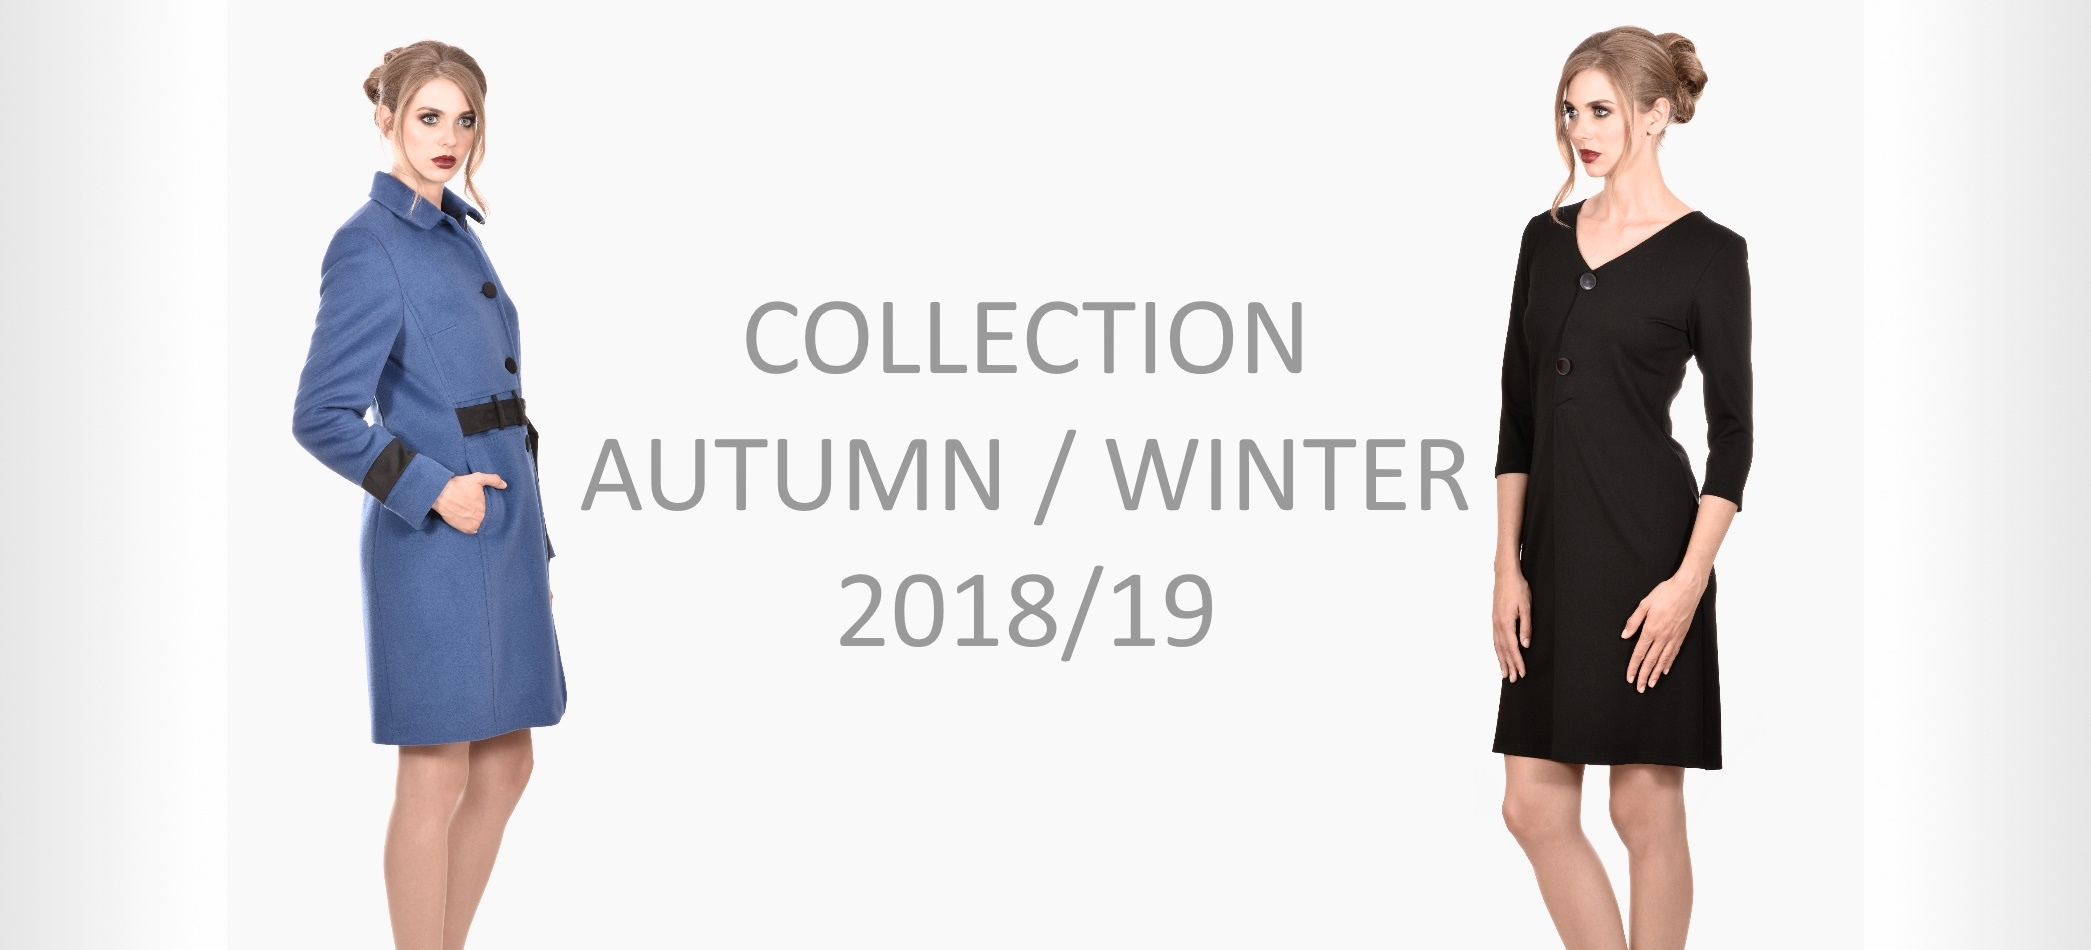 lady m by maria fashion autumn-winter 2019 women's coats and dresses